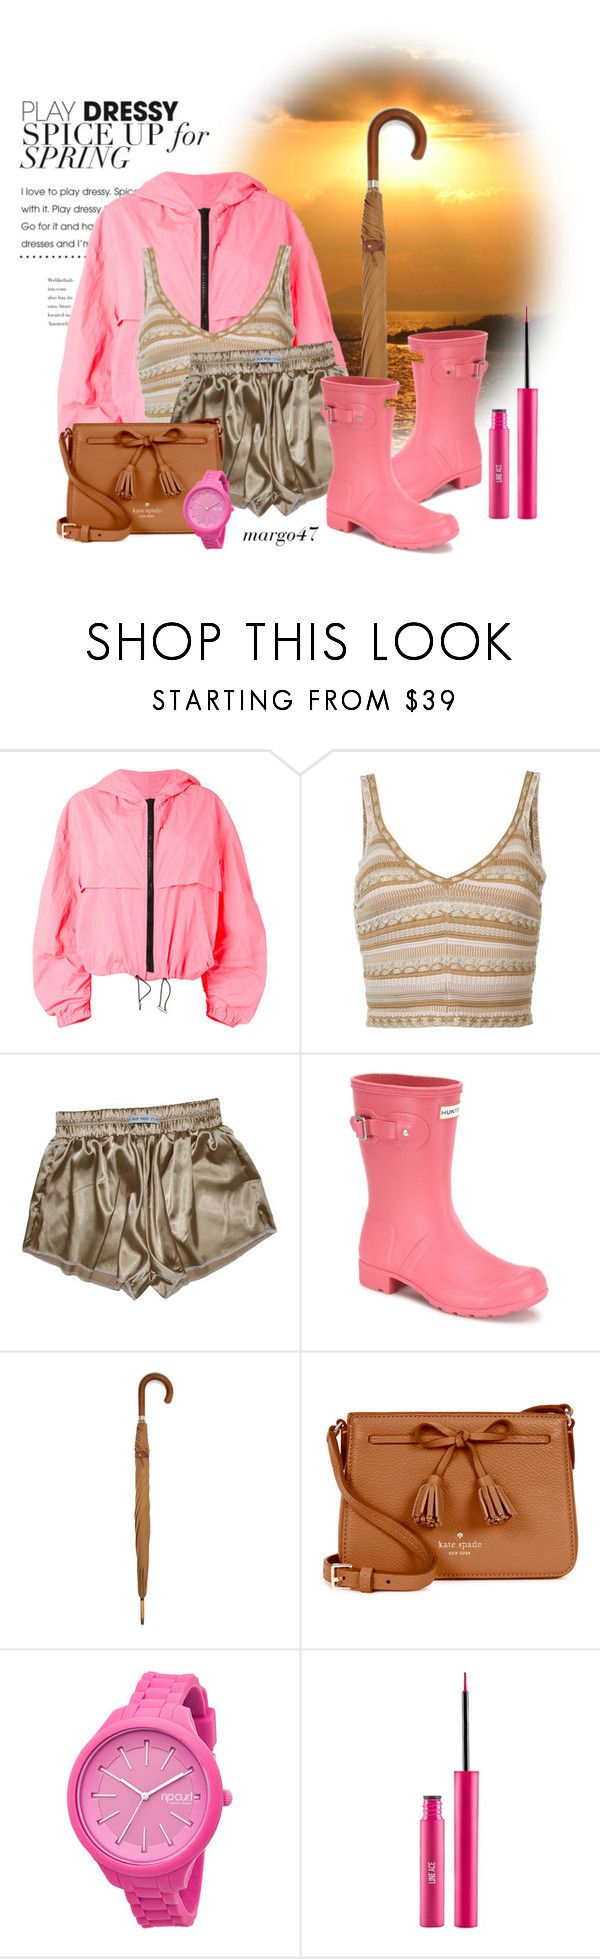 """""""letni deszcz"""" by margo47 ❤ liked on Polyvore featuring MSGM, Alice + Olivia, Hunter, London Undercover, Kate Spade, Rip Curl and Sigma"""